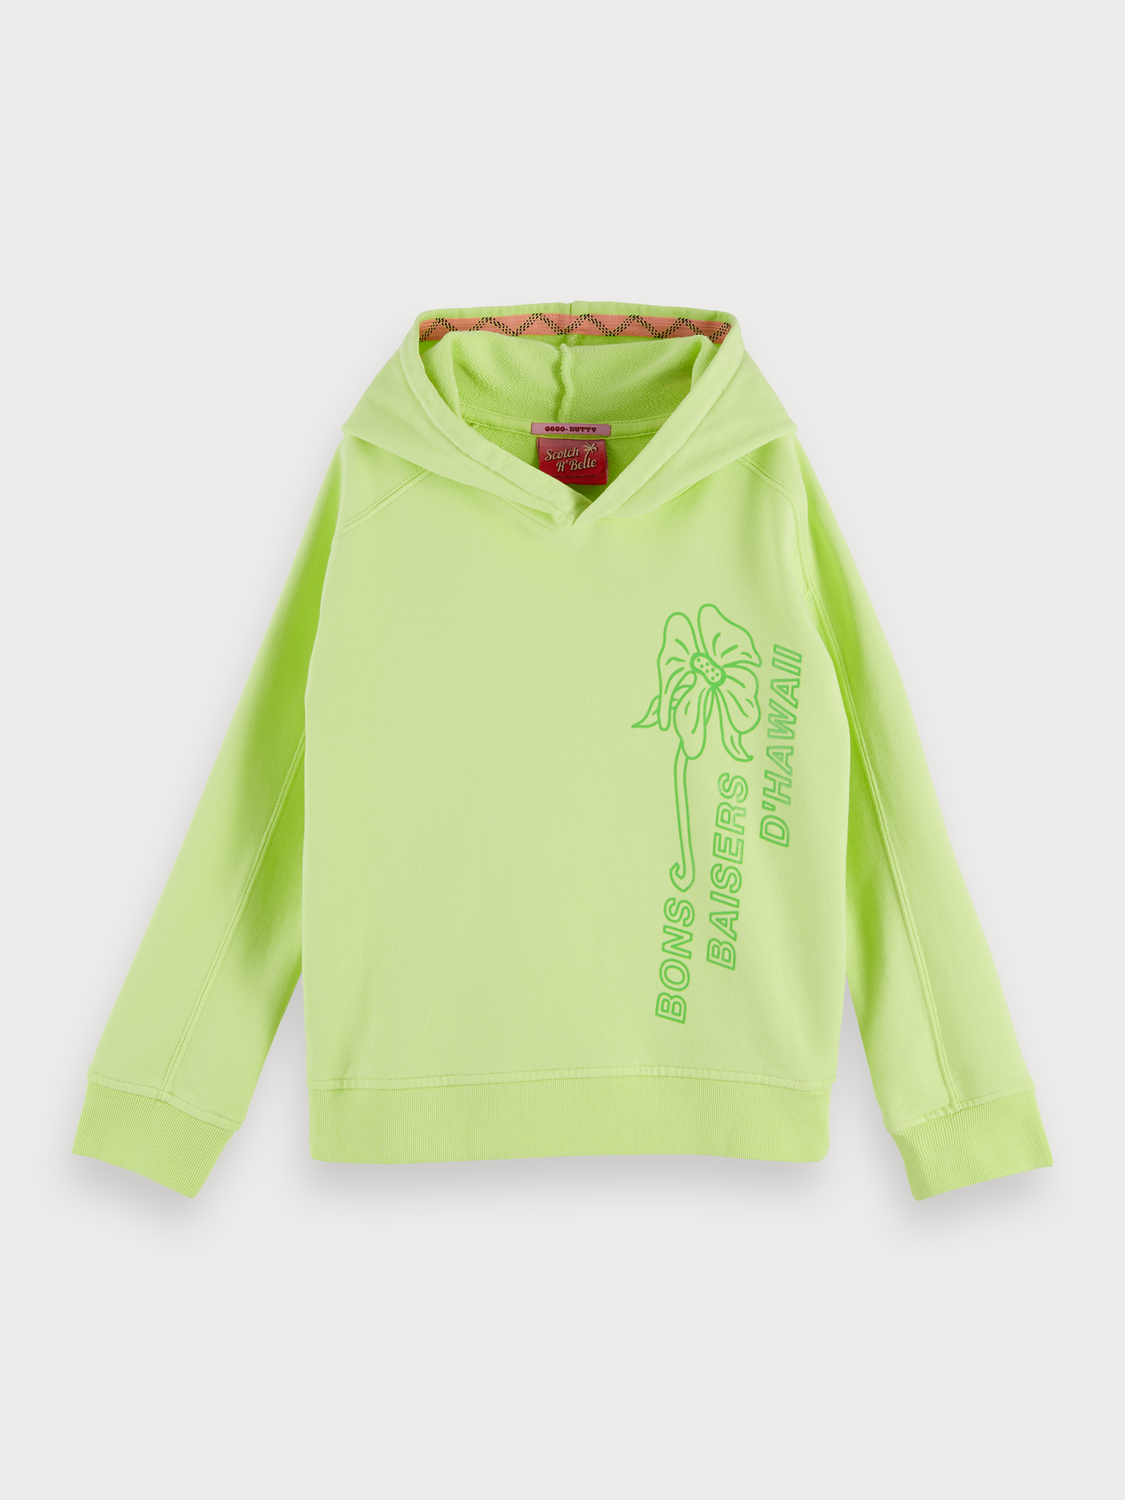 Fille Sweat-shirt à capuche citron vert